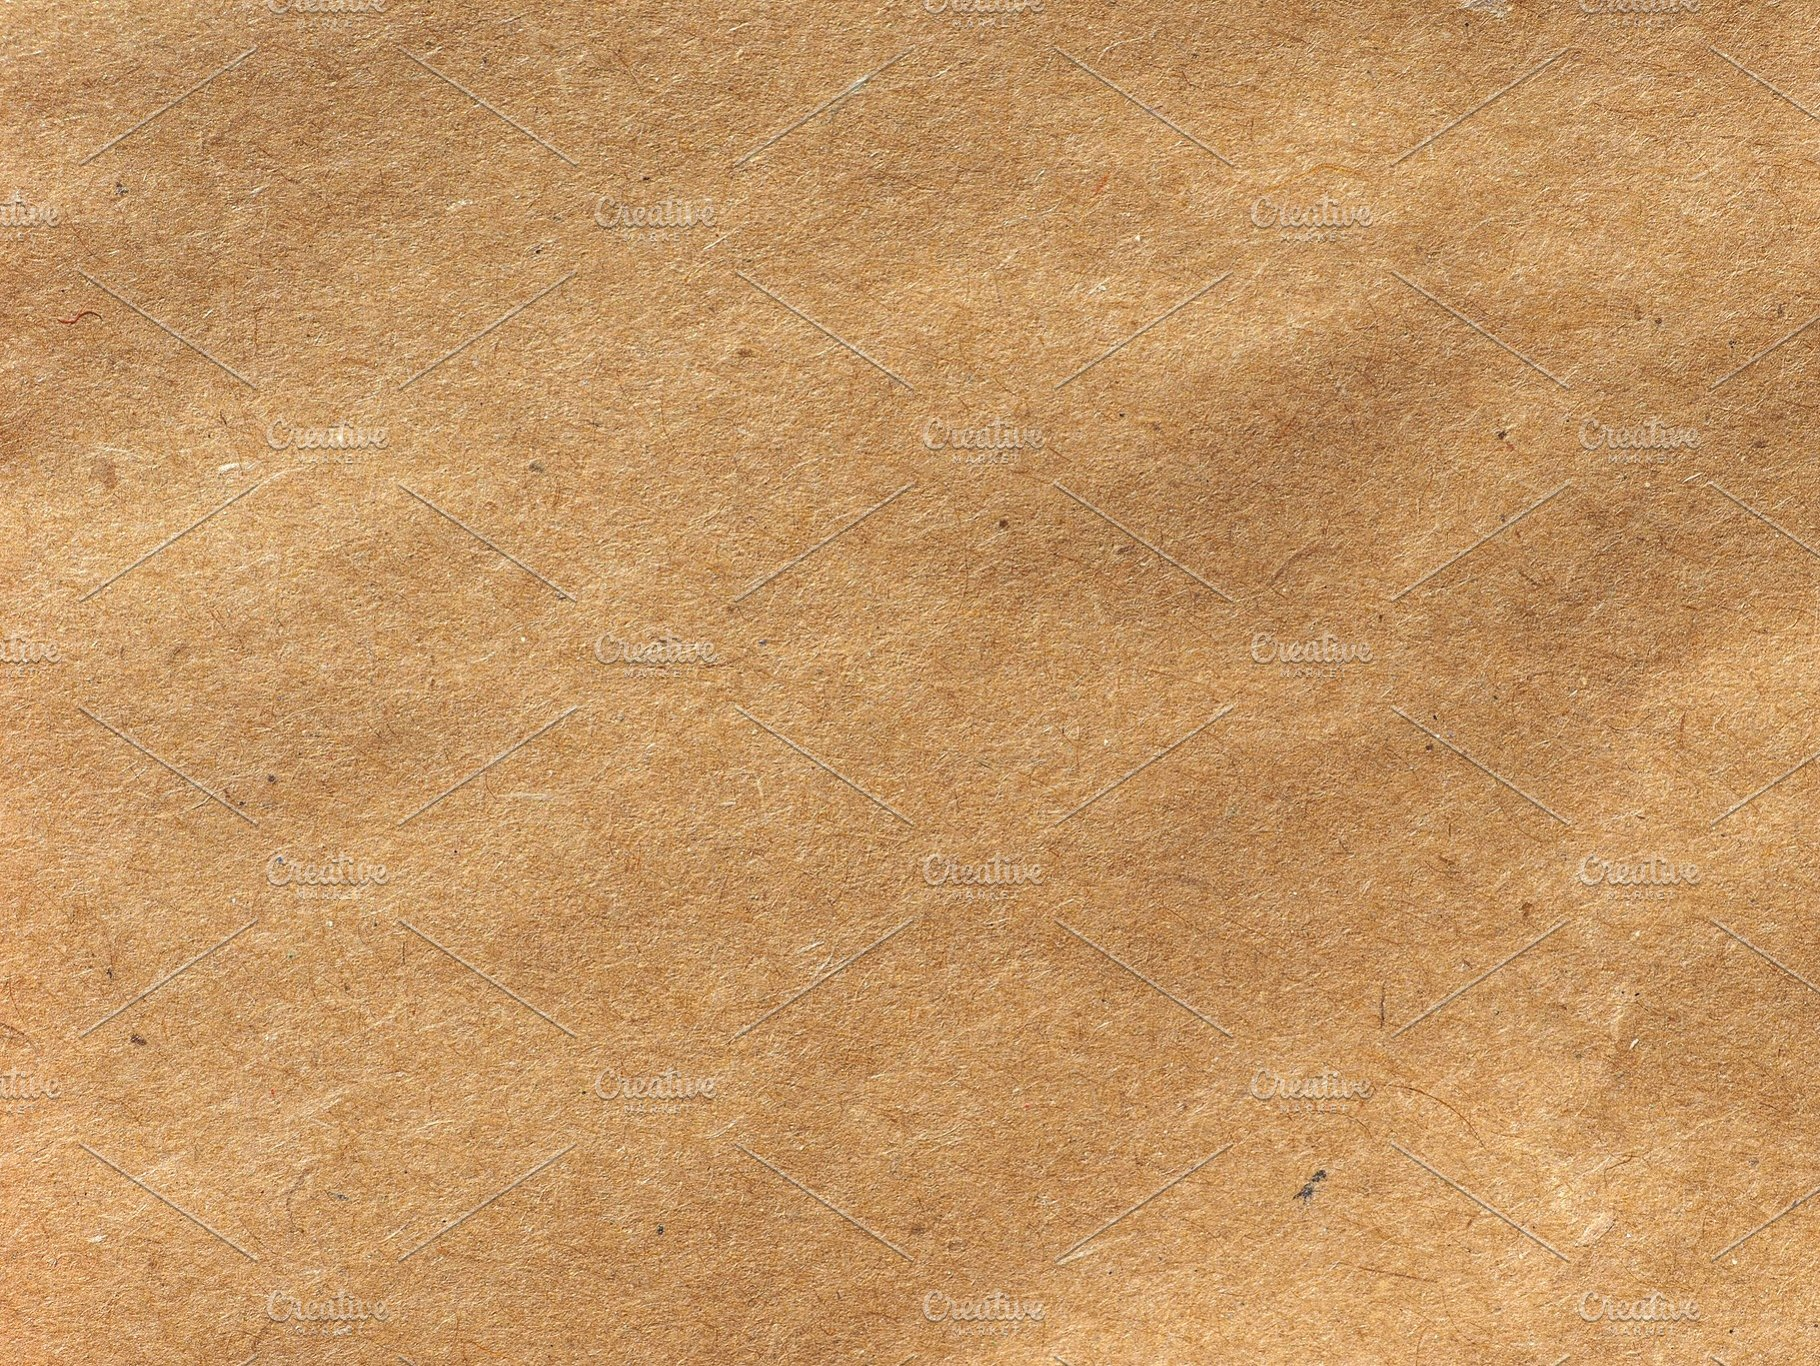 brown paper texture background High Quality Stock Photos 1820x1366